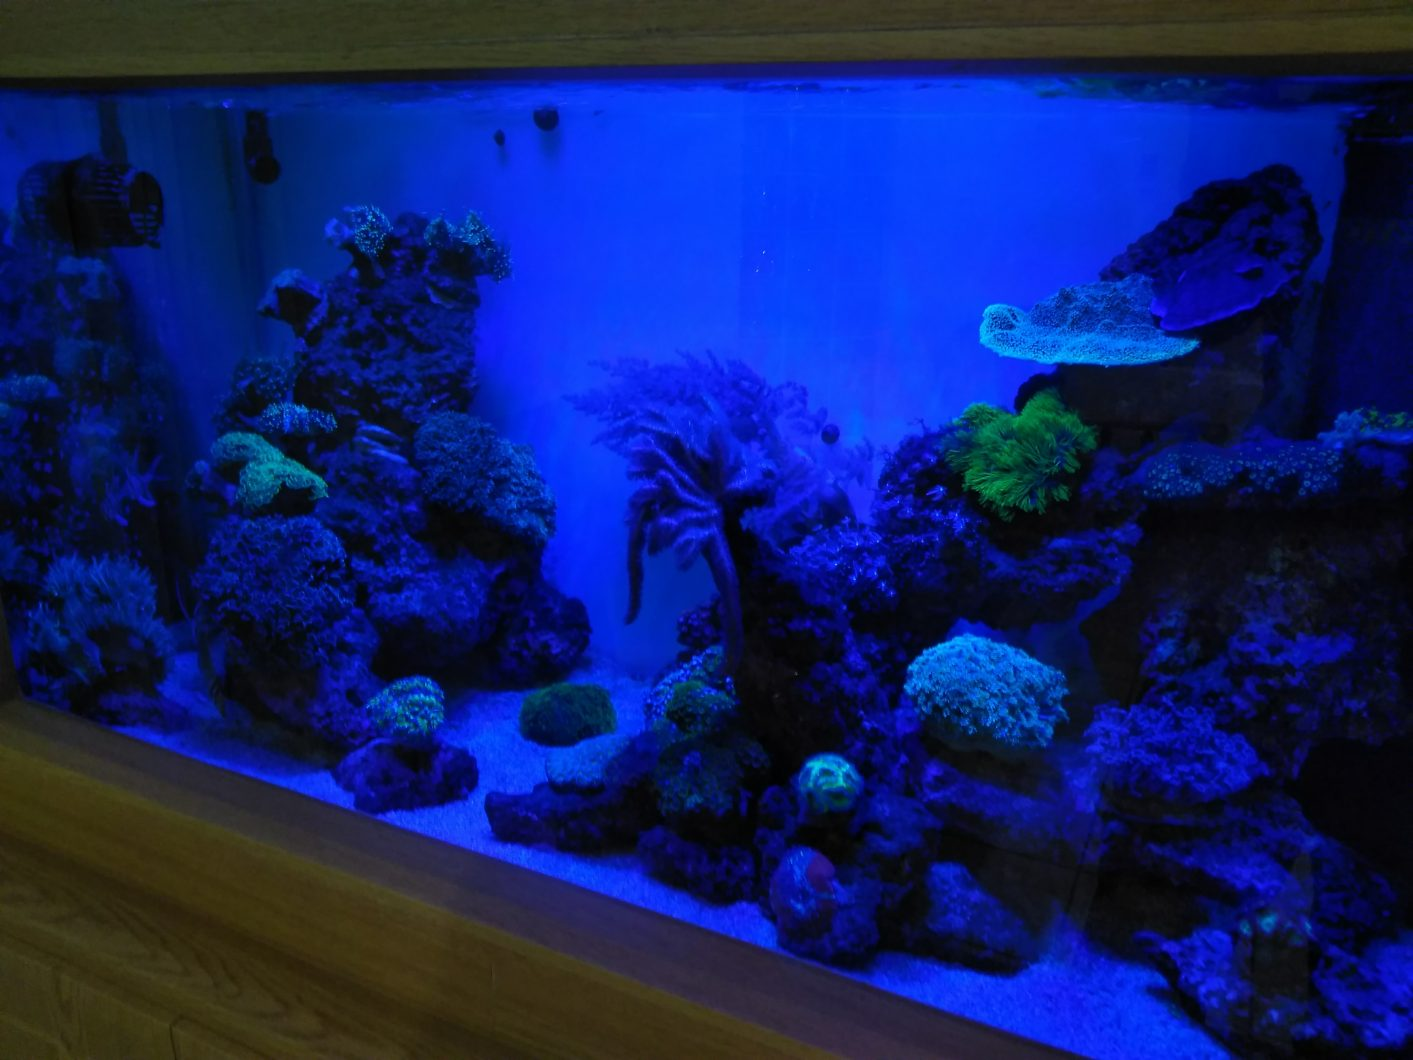 -Moonlight LED-aquarium-light